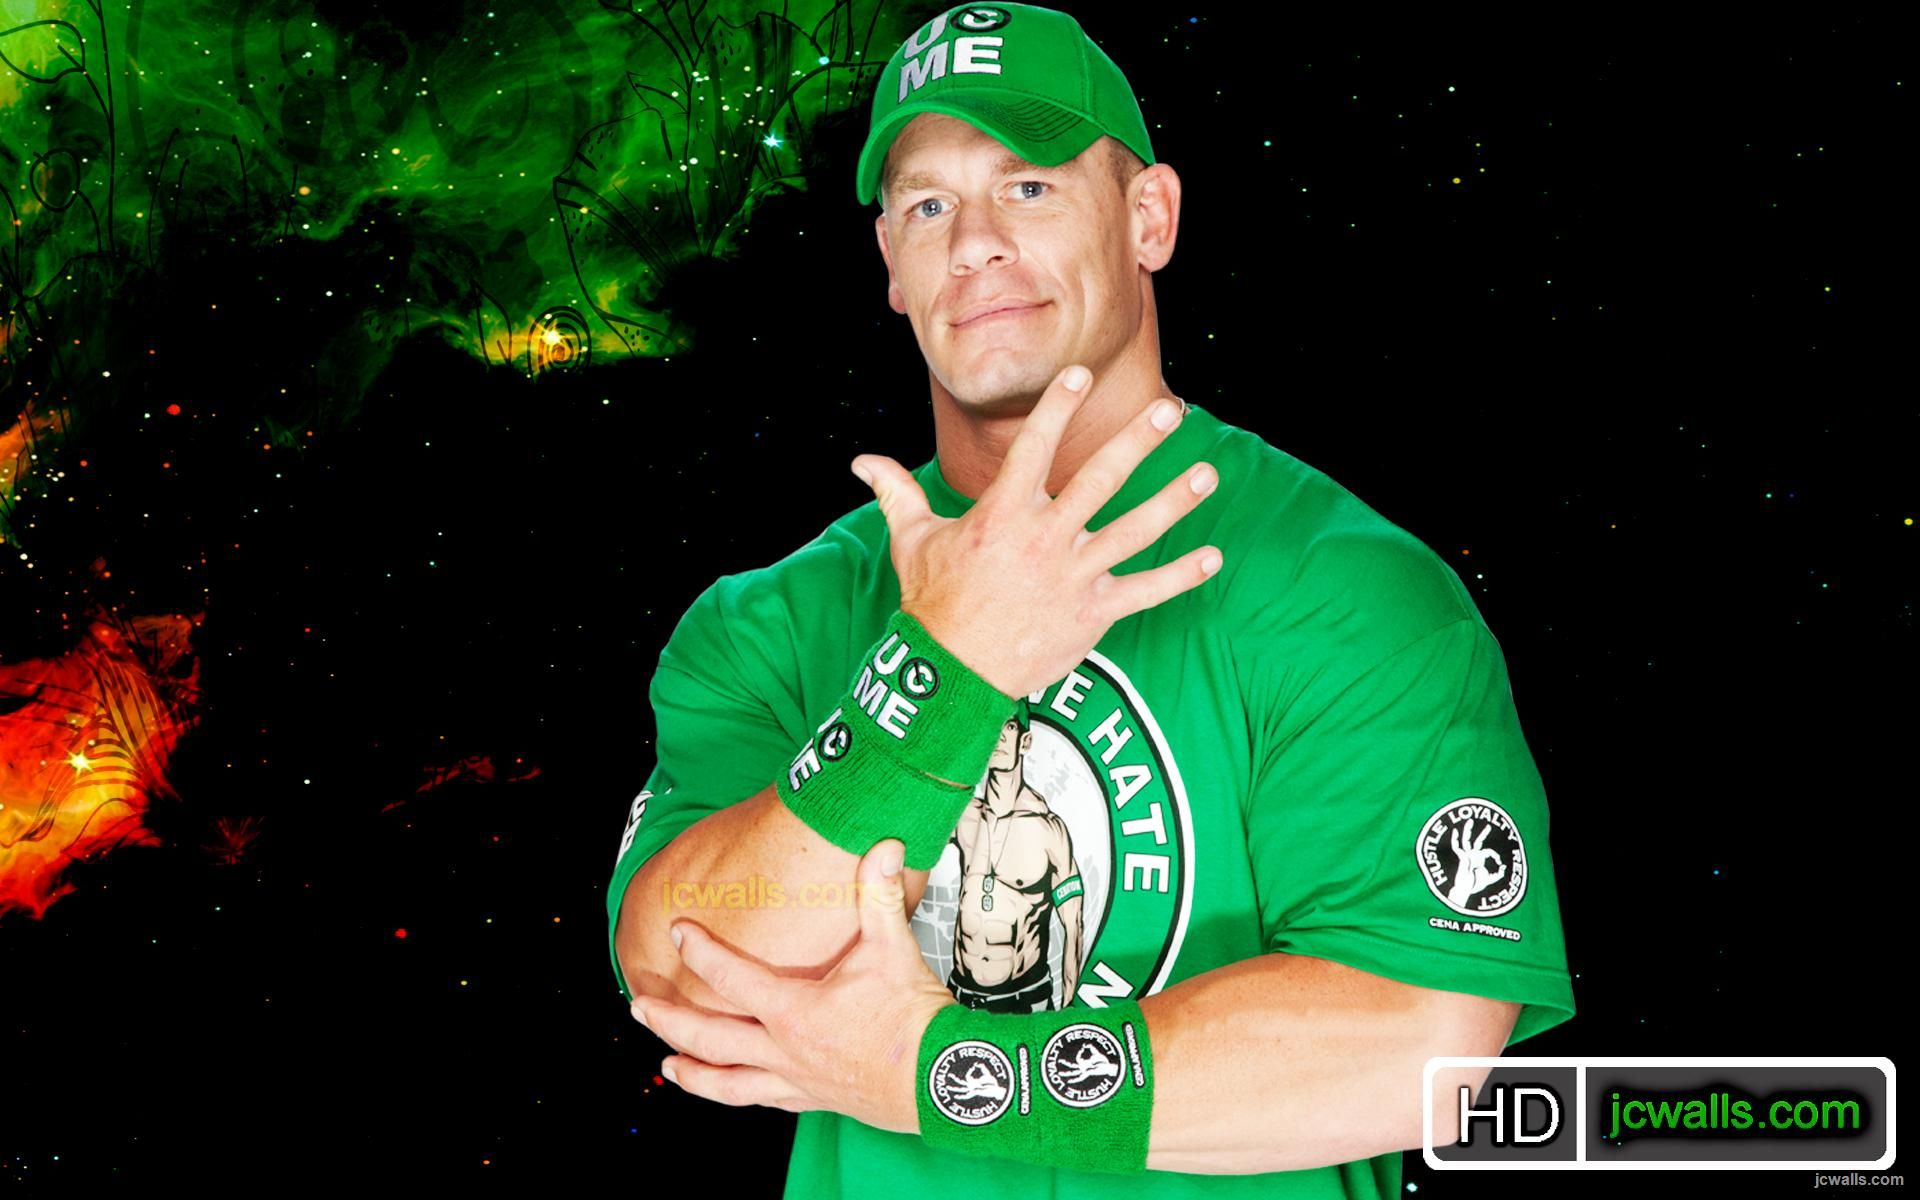 Hd wallpaper john cena - Find This Pin And More On Hd Wallpapers Pictures Of John Cena